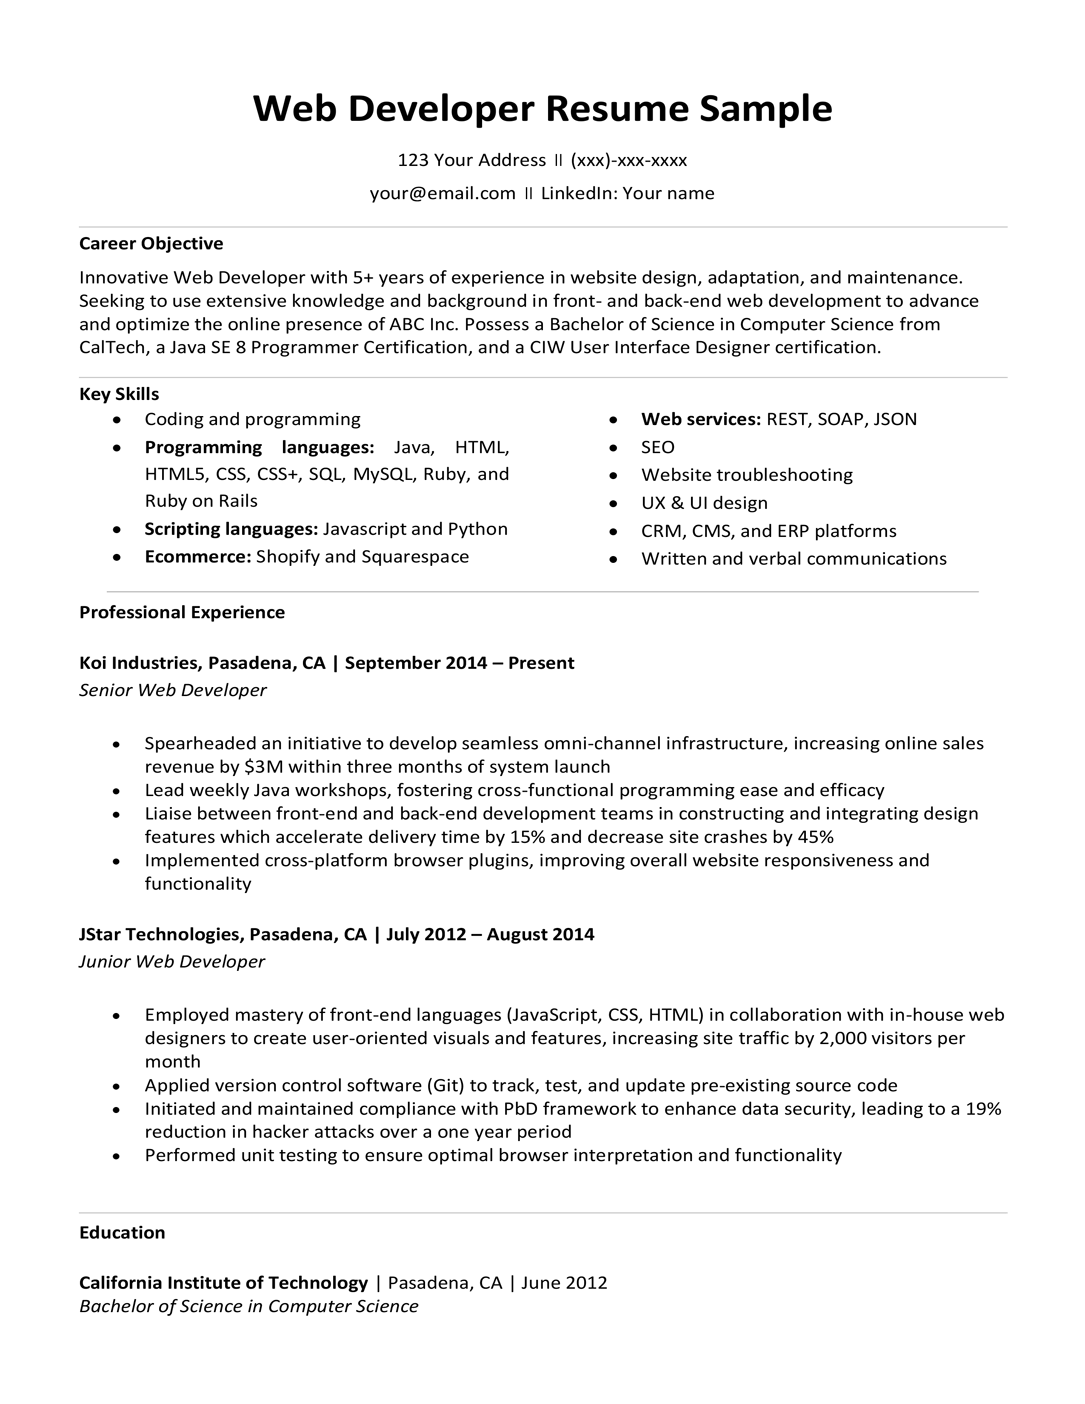 Web Developer Resume Sample Writing Tips Resume Companion